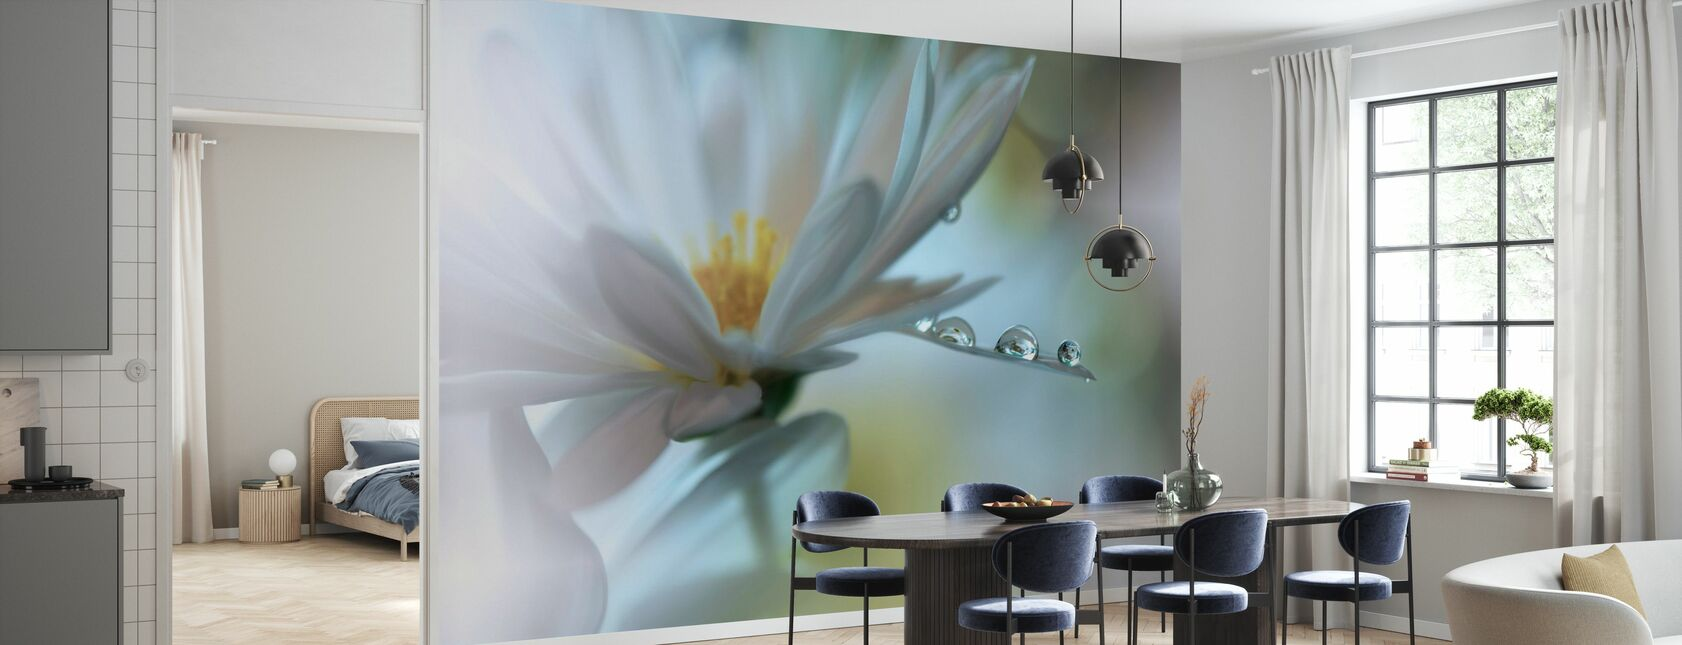 Flower - Wallpaper - Kitchen